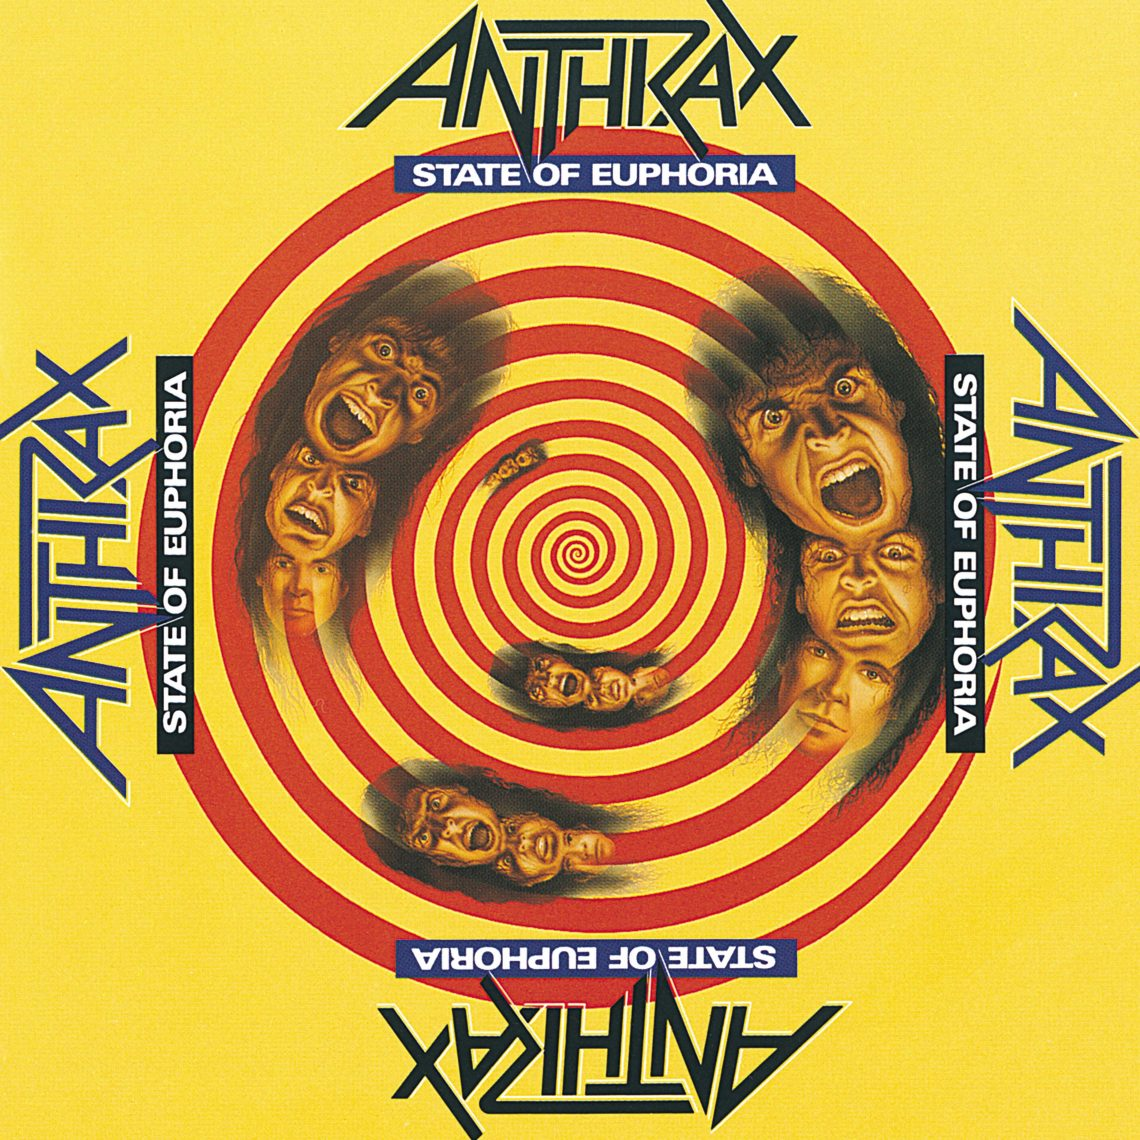 ANTHRAX TO CELEBRATE THE 30TH ANNIVERSARY OF STATE OF EUPHORIA